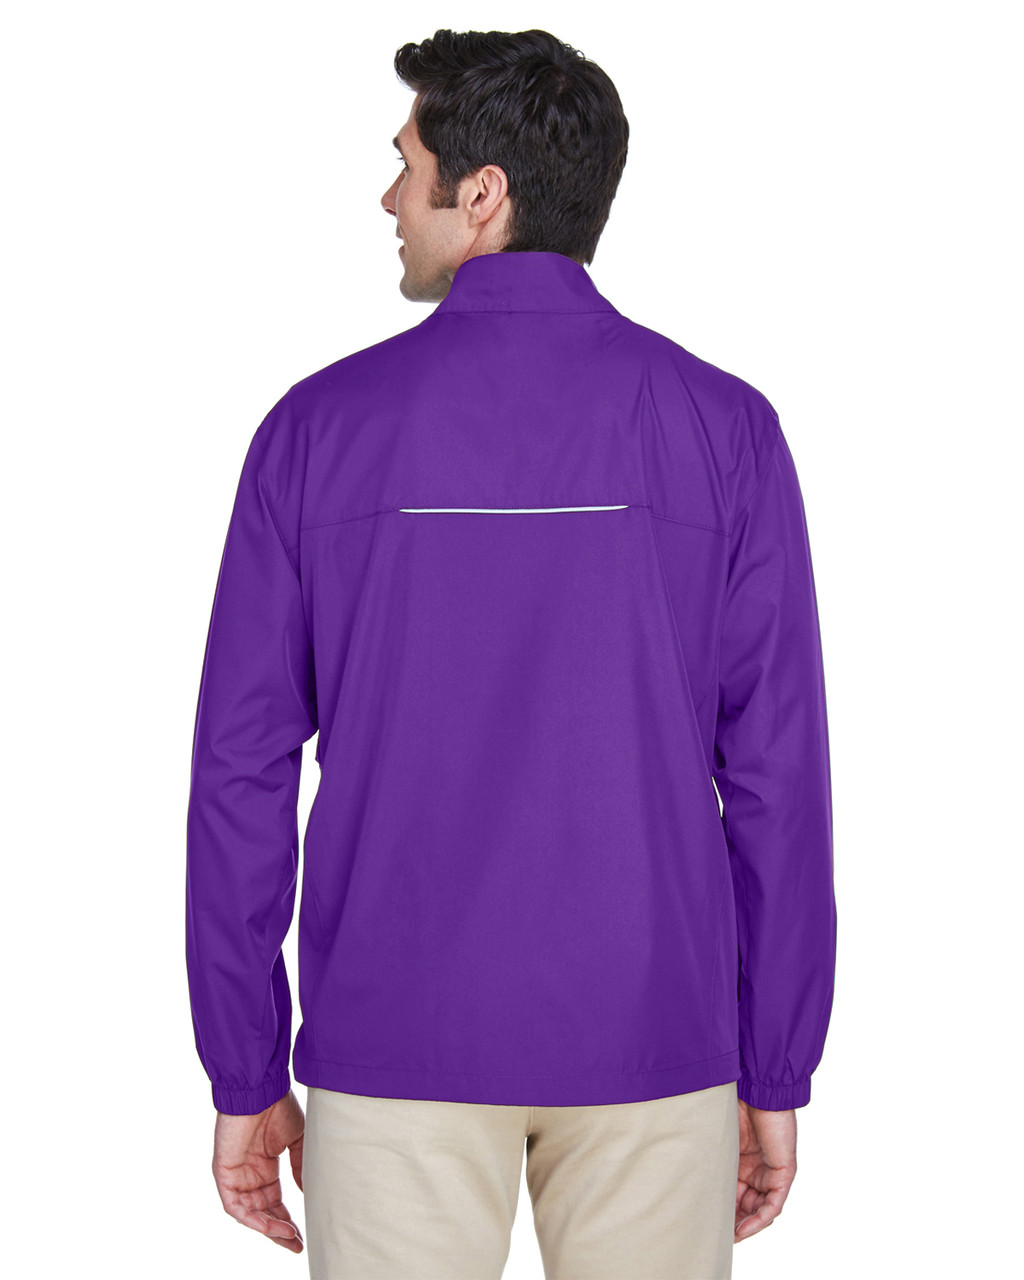 Campus Purple - Back, 88183 Ash City - Core 365 Motivate Unlined Lightweight Jacket | Blankclothing.ca